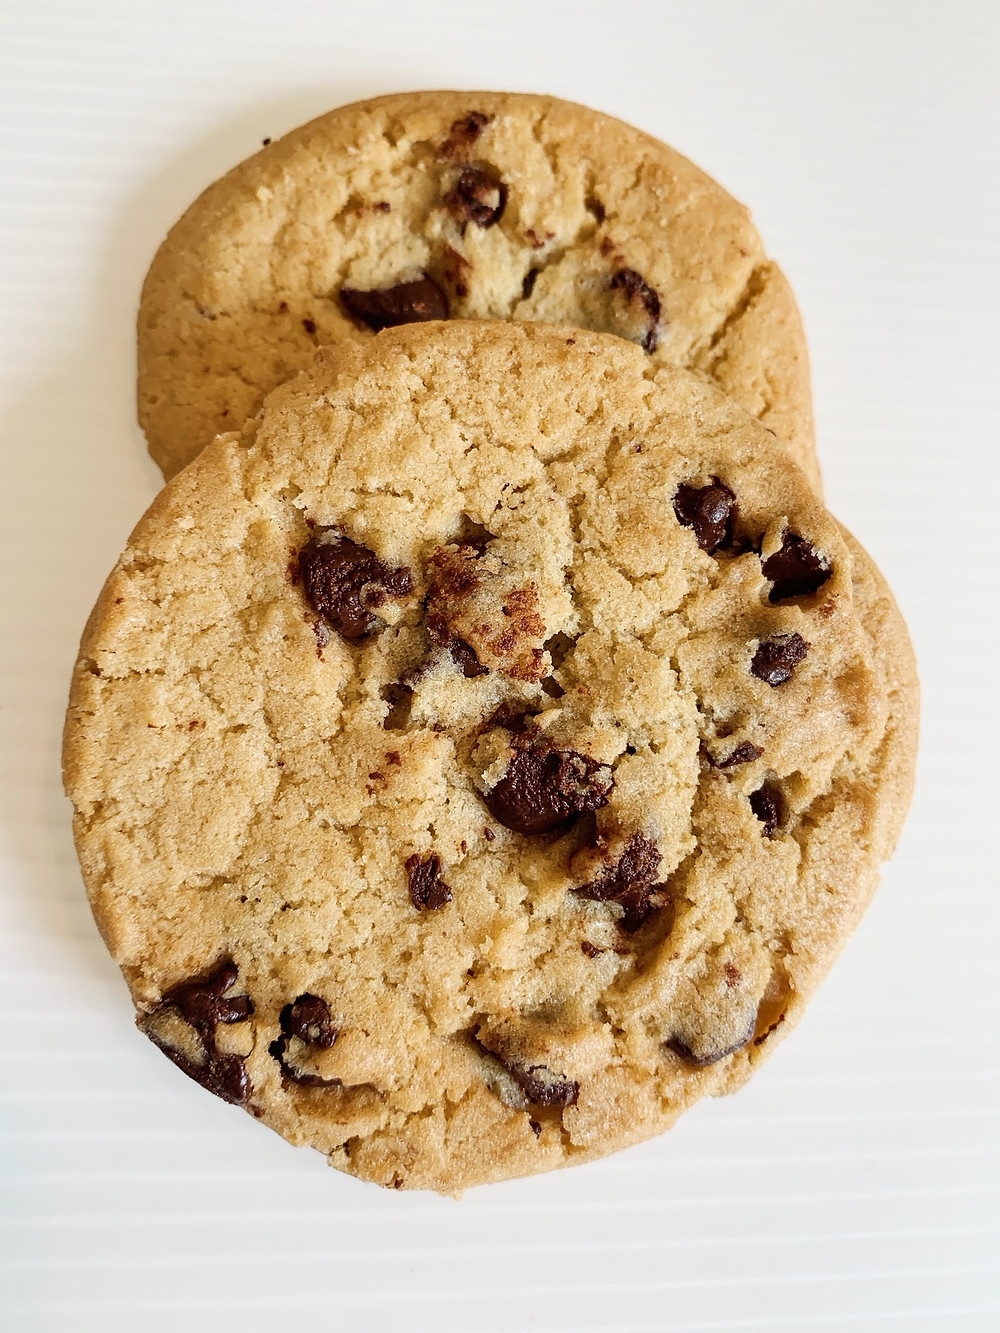 Chocolate Chip Cookies from Tiff's Treats